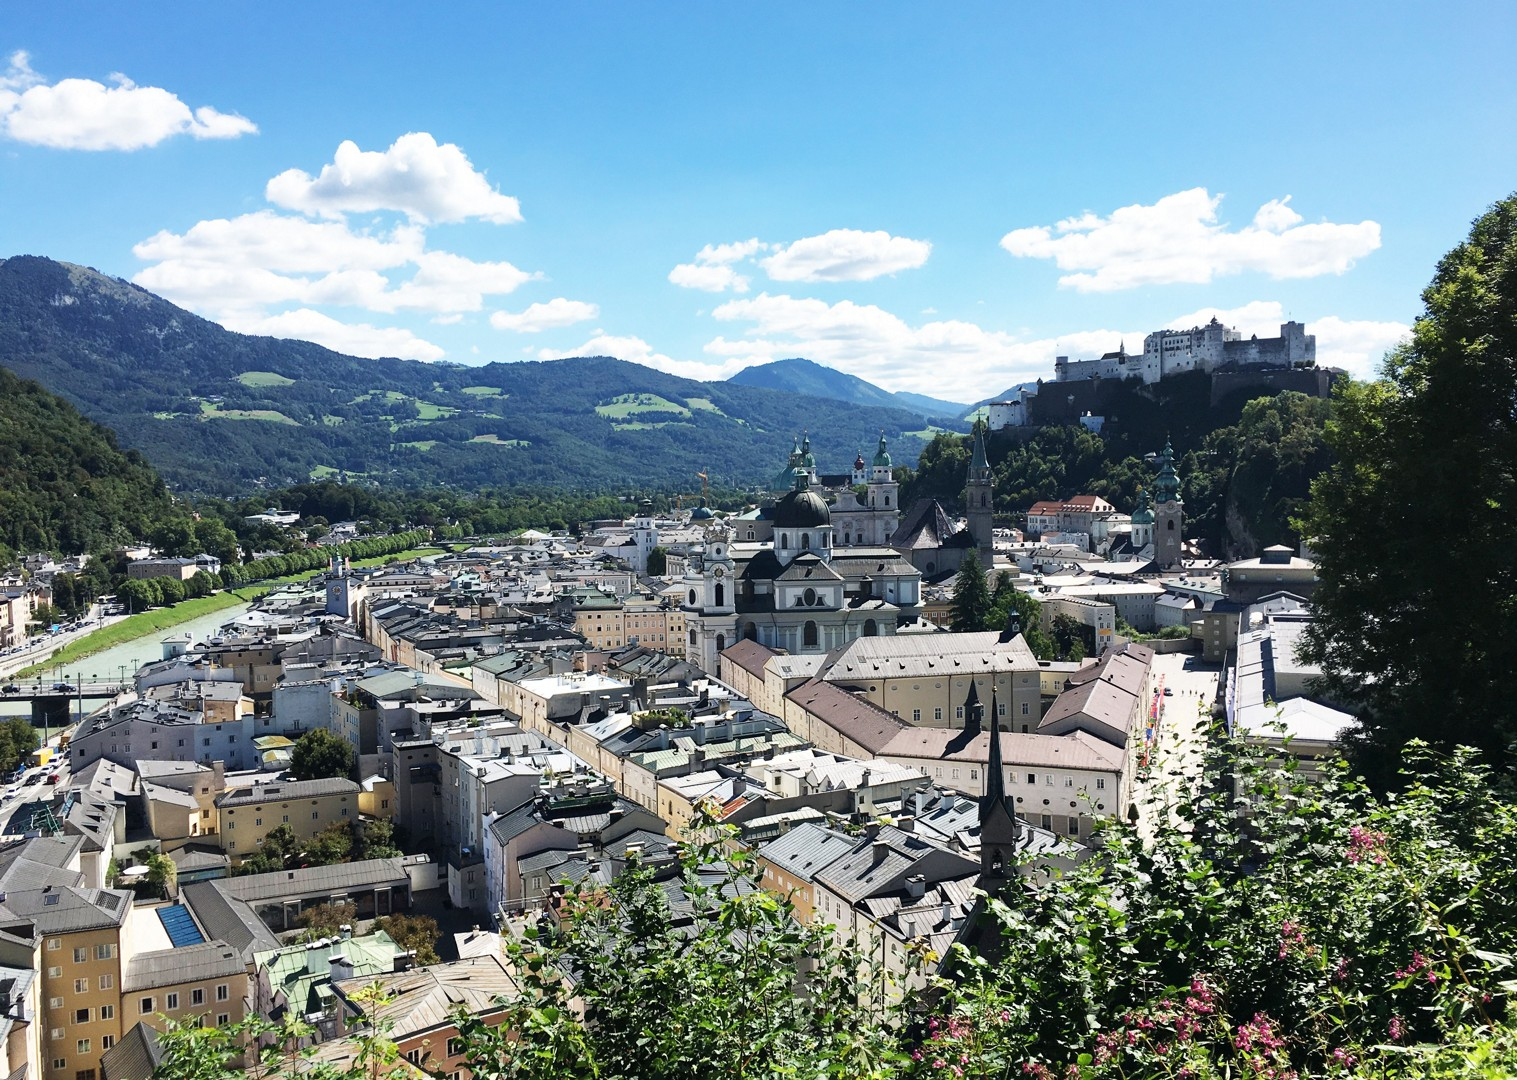 tyrolean-valleys-austria-views-family-holiday-self-guided.jpg - Austria - Tyrolean Valleys - Family Cycling